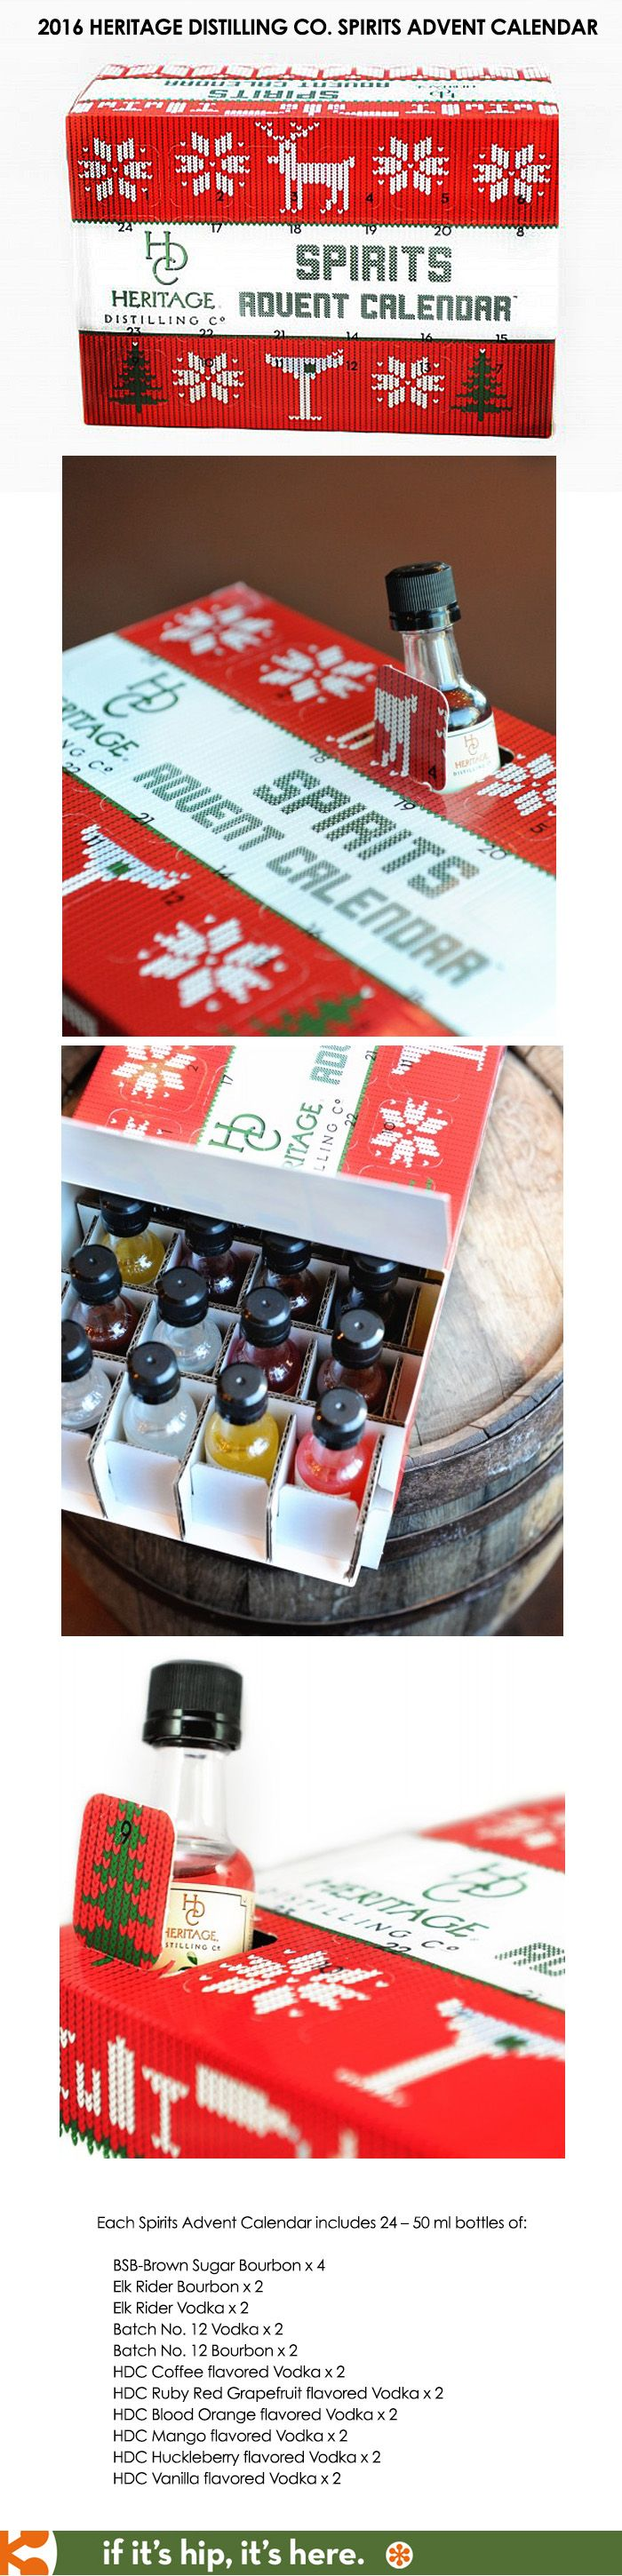 The 2016 Spirits Advent Calendar is a cardboard box filled with 24 mini bottles of booze from Heritage Distilling Co.